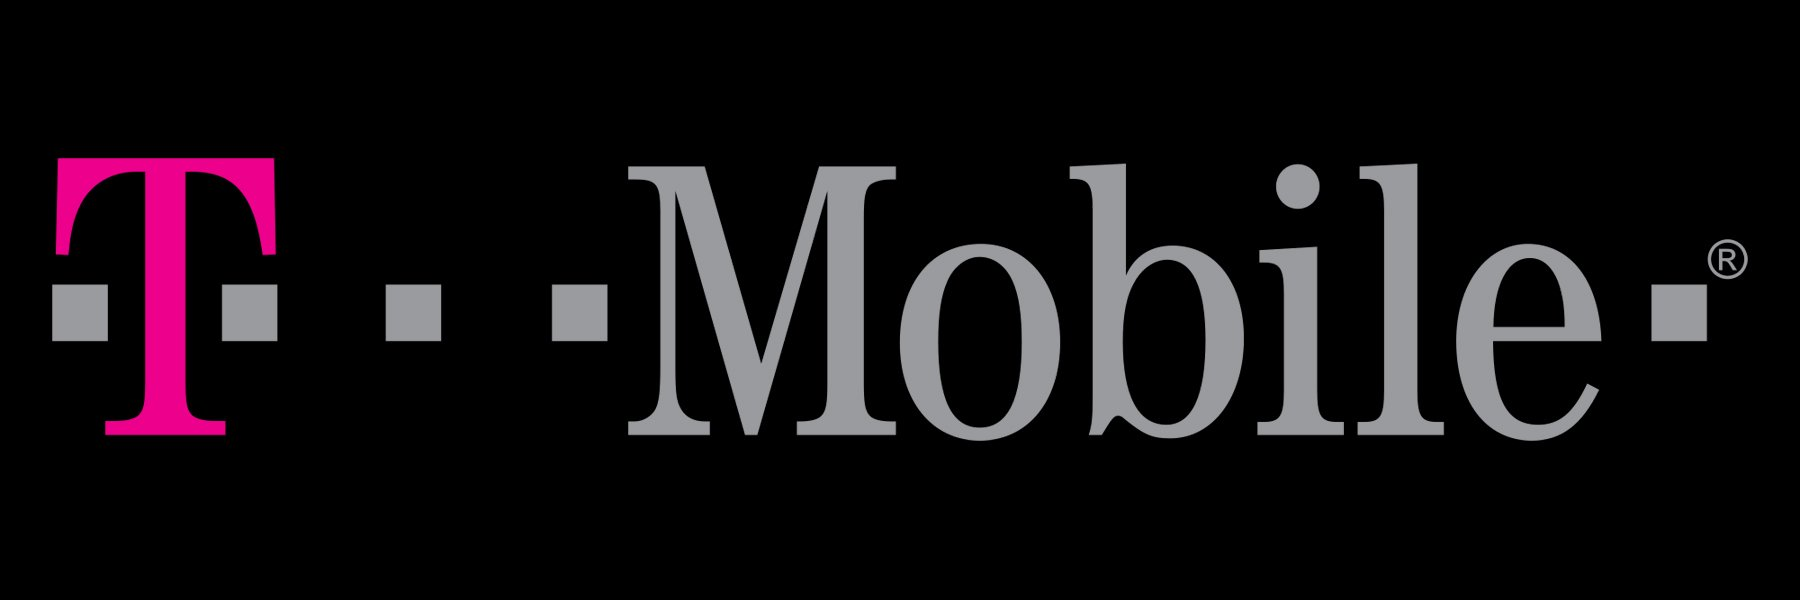 T Mobile Logo T Mobile Symbol Meaning History And Evolution